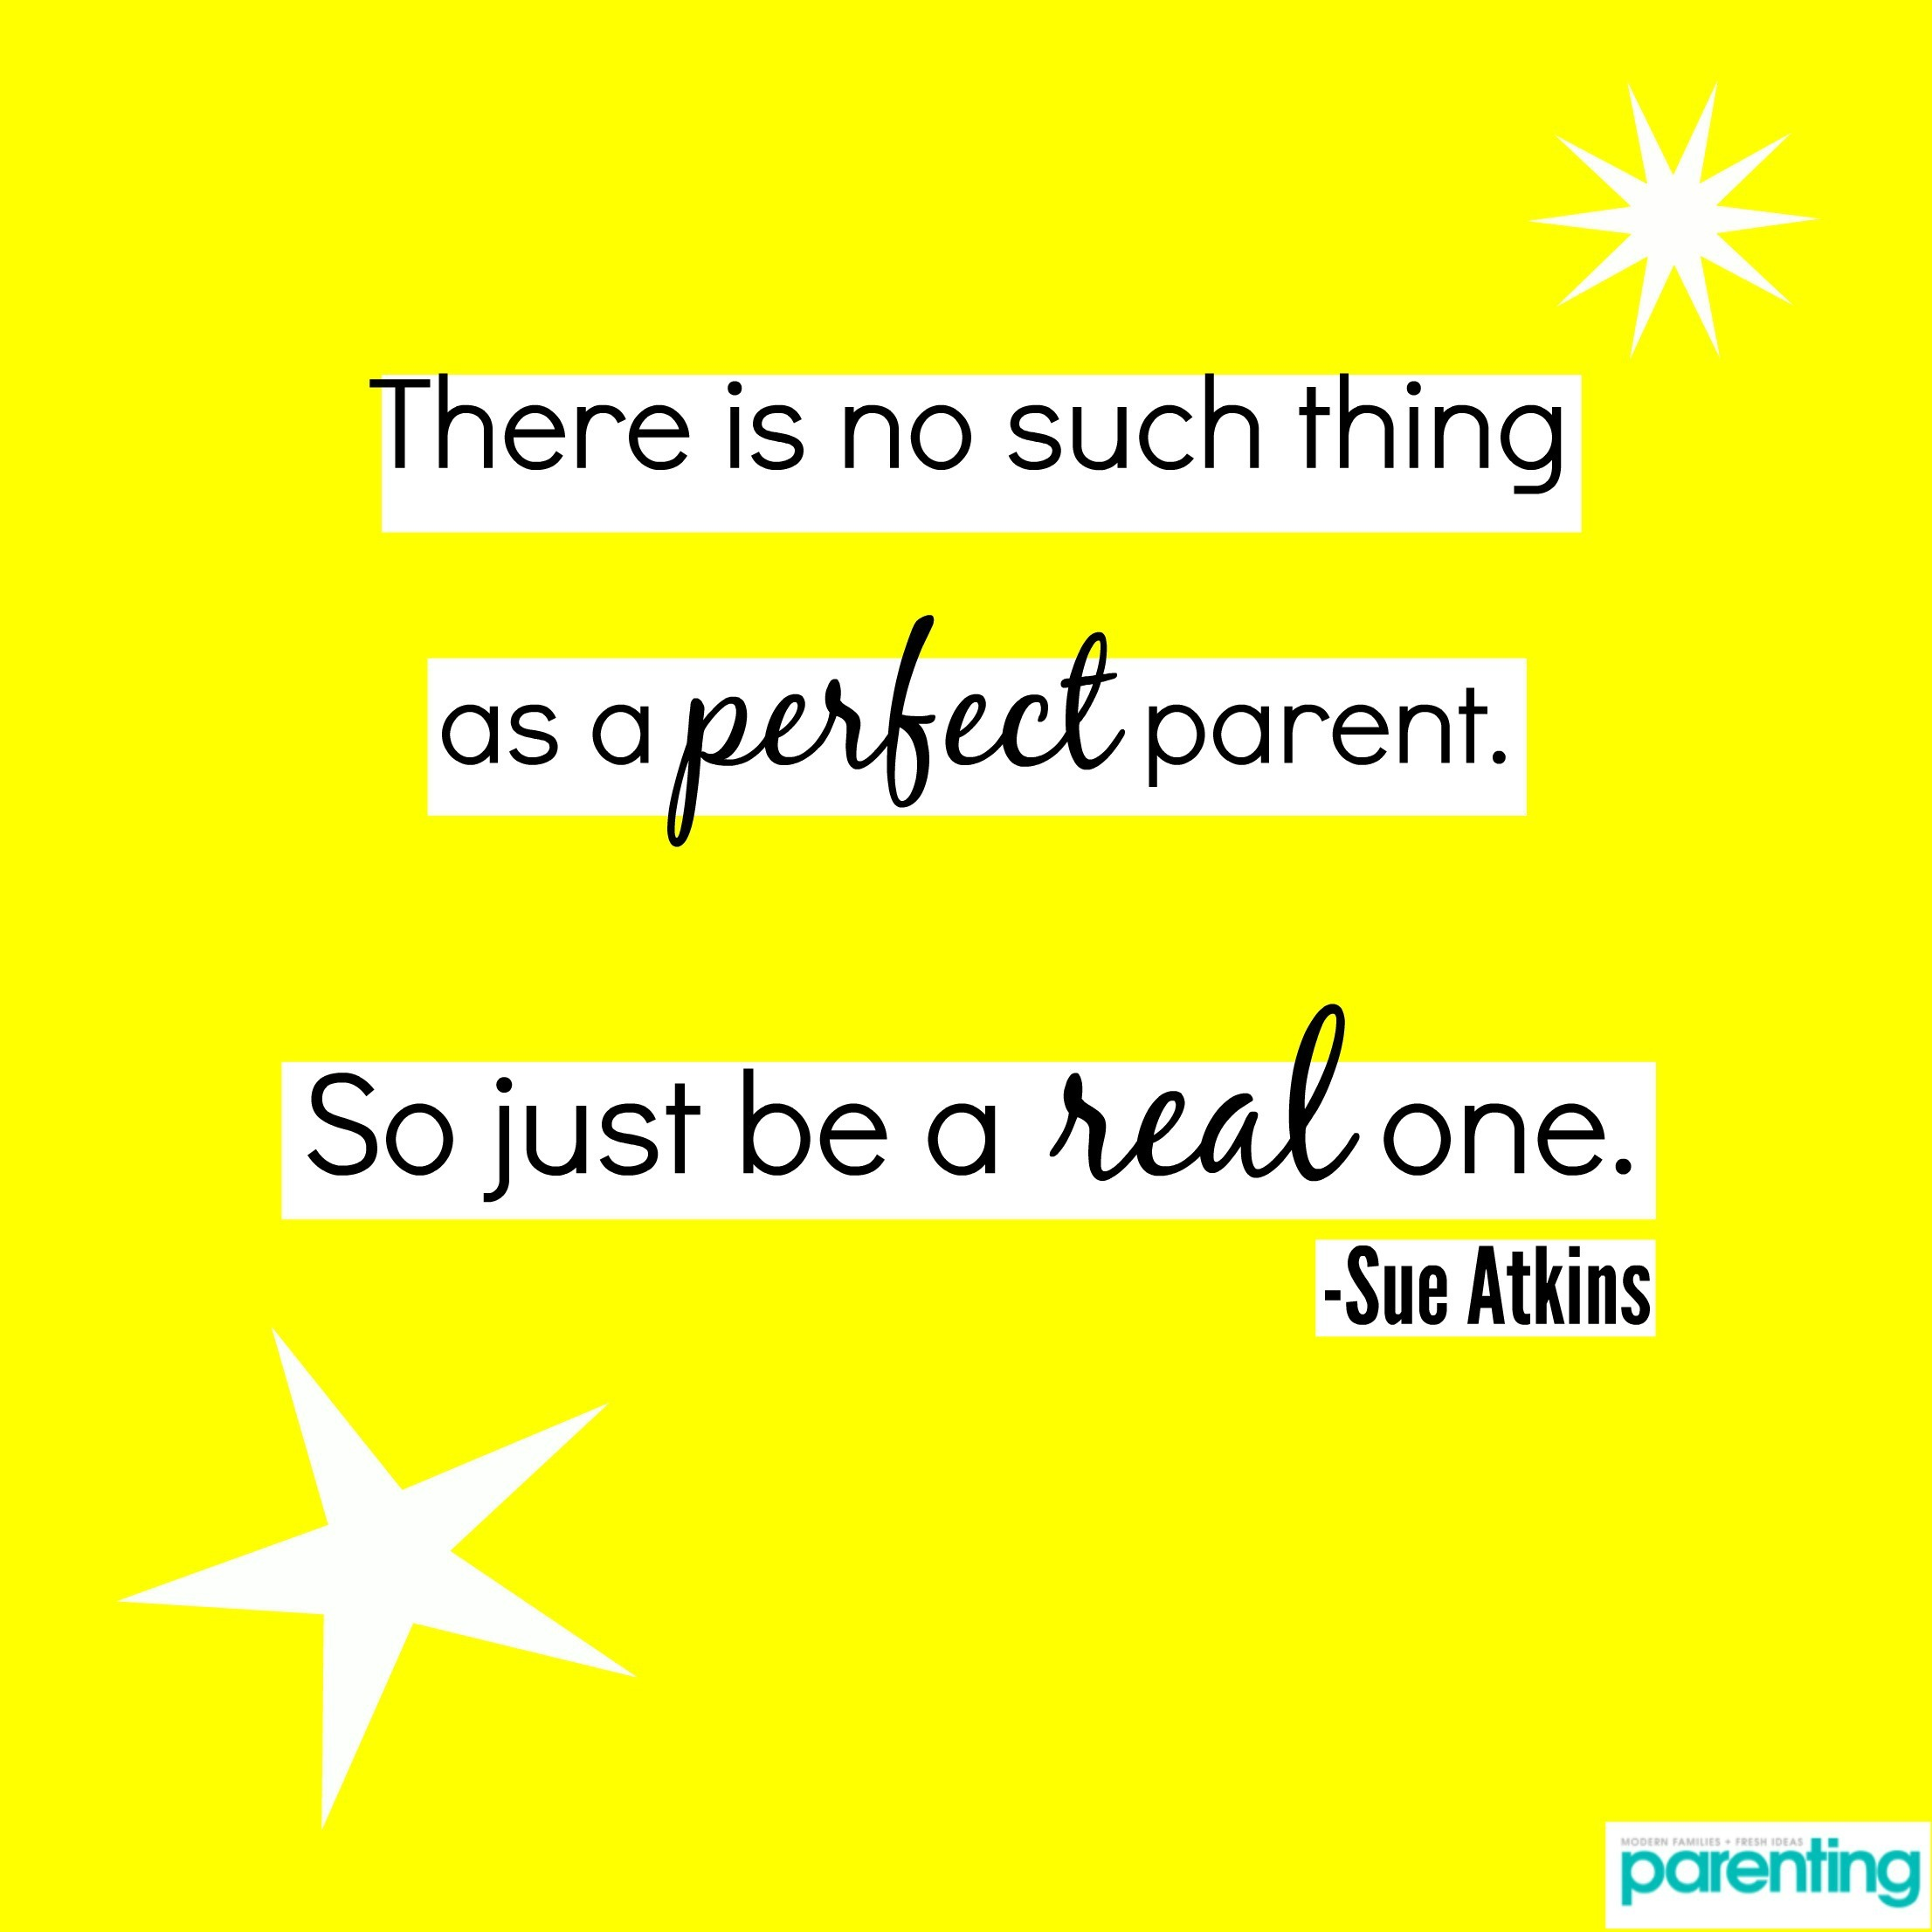 Parenting Quotes | 17 Amazing Parenting Quotes That Will Make You A Better Parent